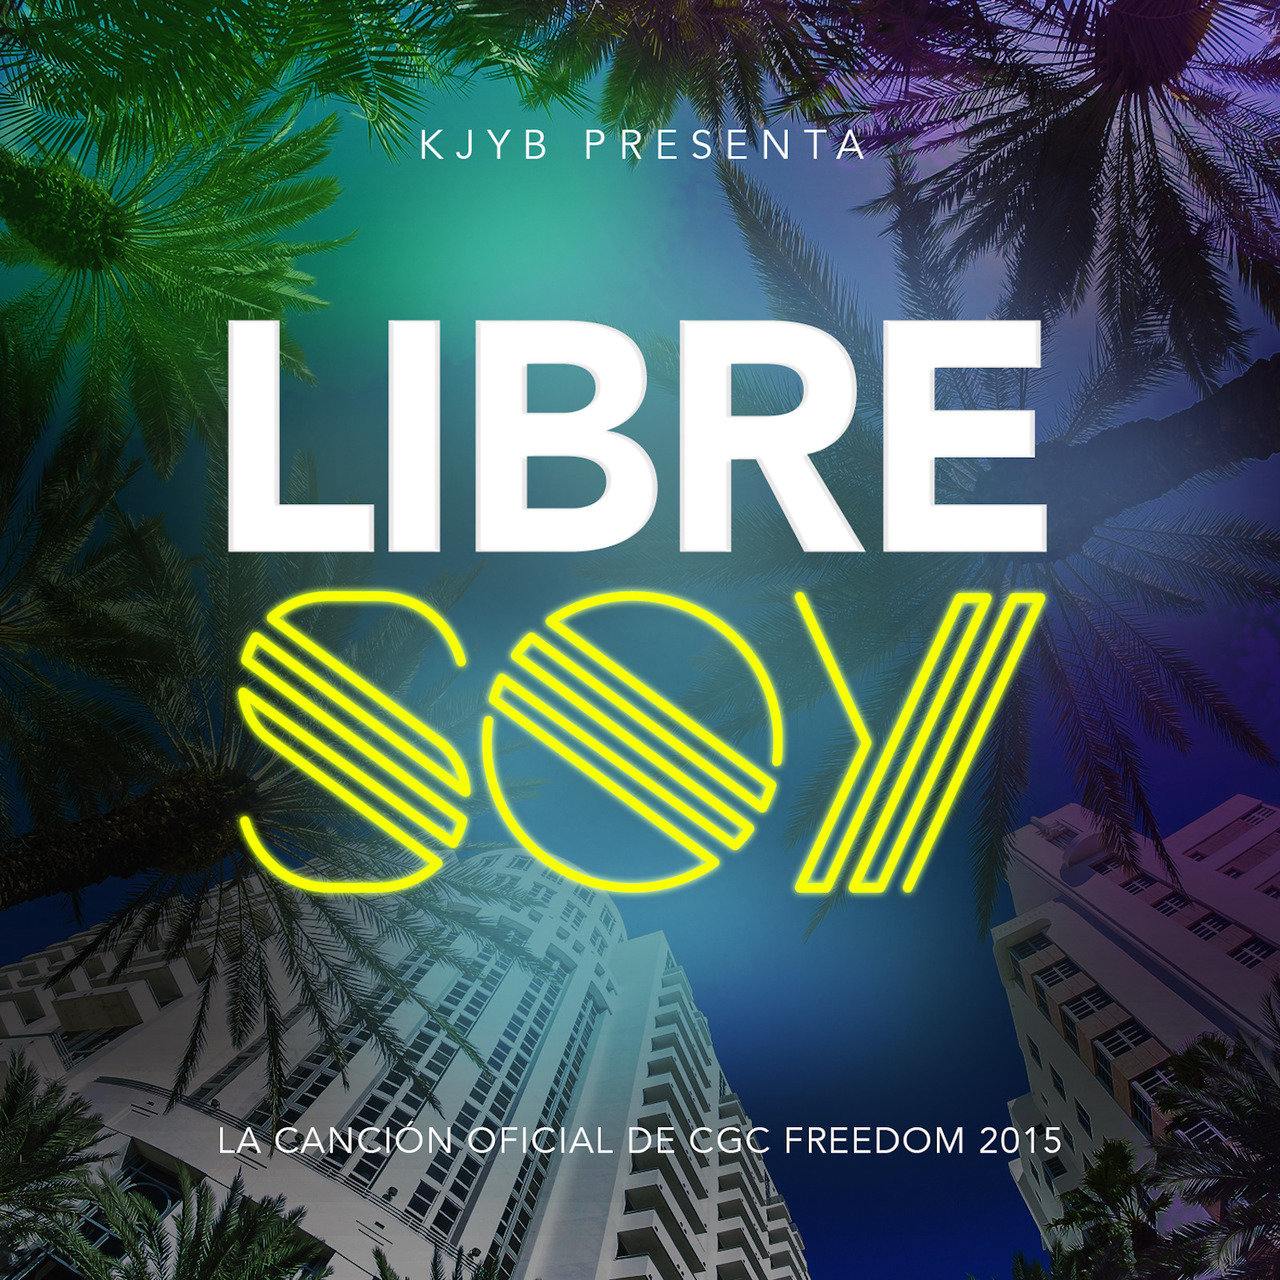 Video Libre Soy Tidal Listen To King Jesus Youth Band On Tidal